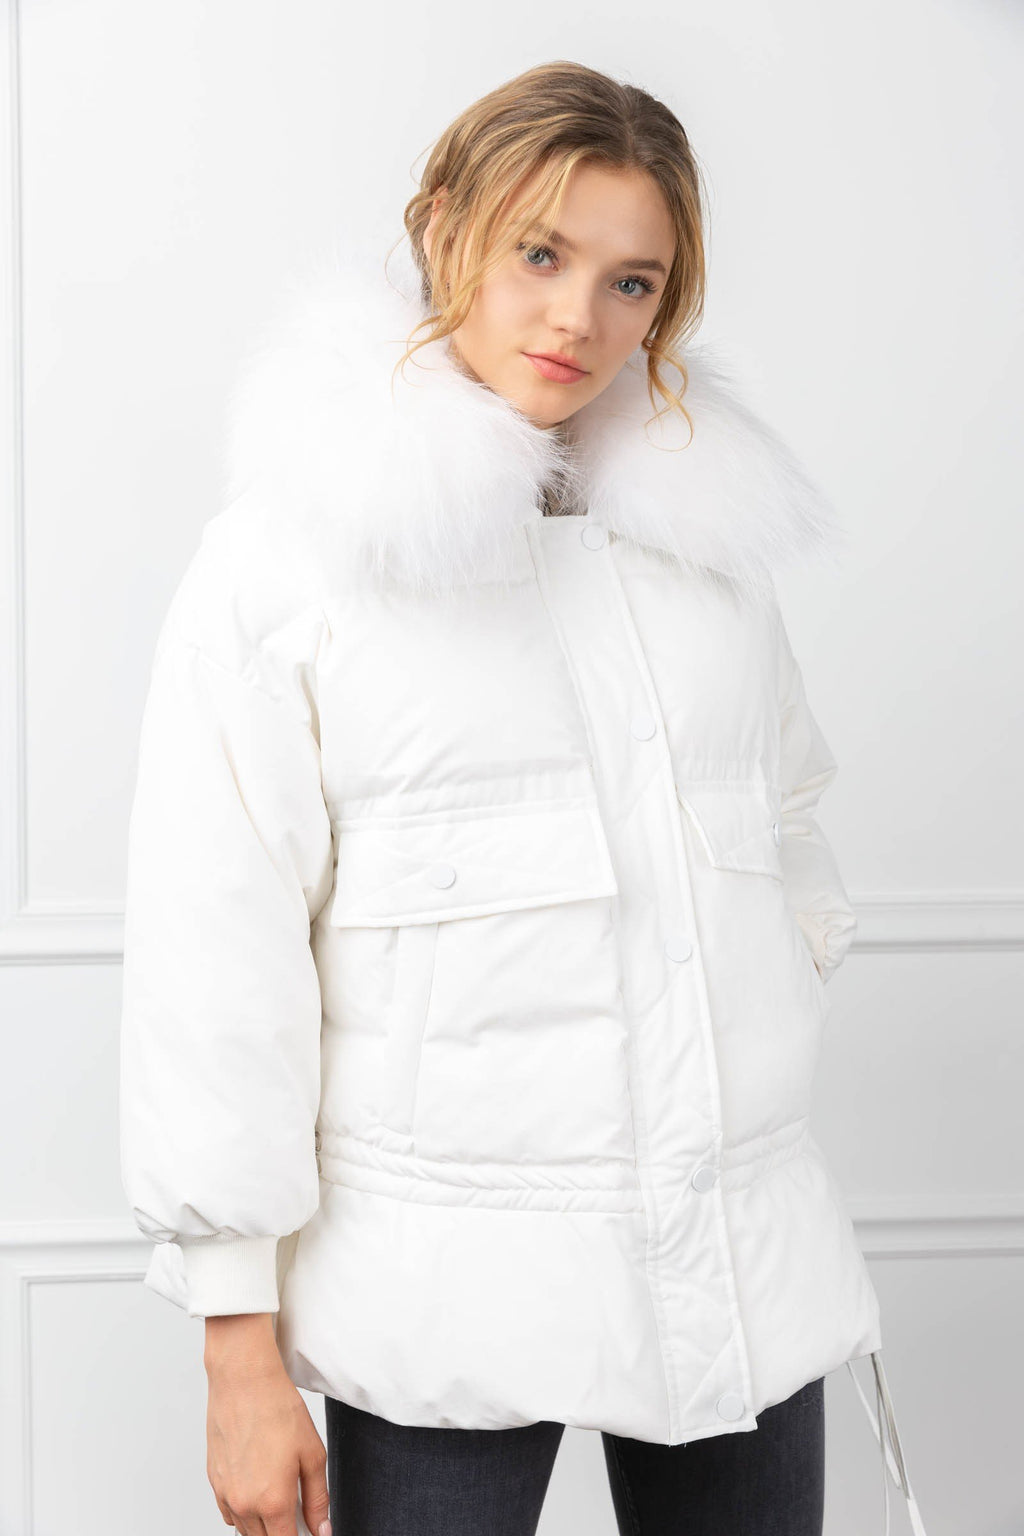 Acacia Parka White in Coats & Jackets by J.ING - an L.A based women's fashion line